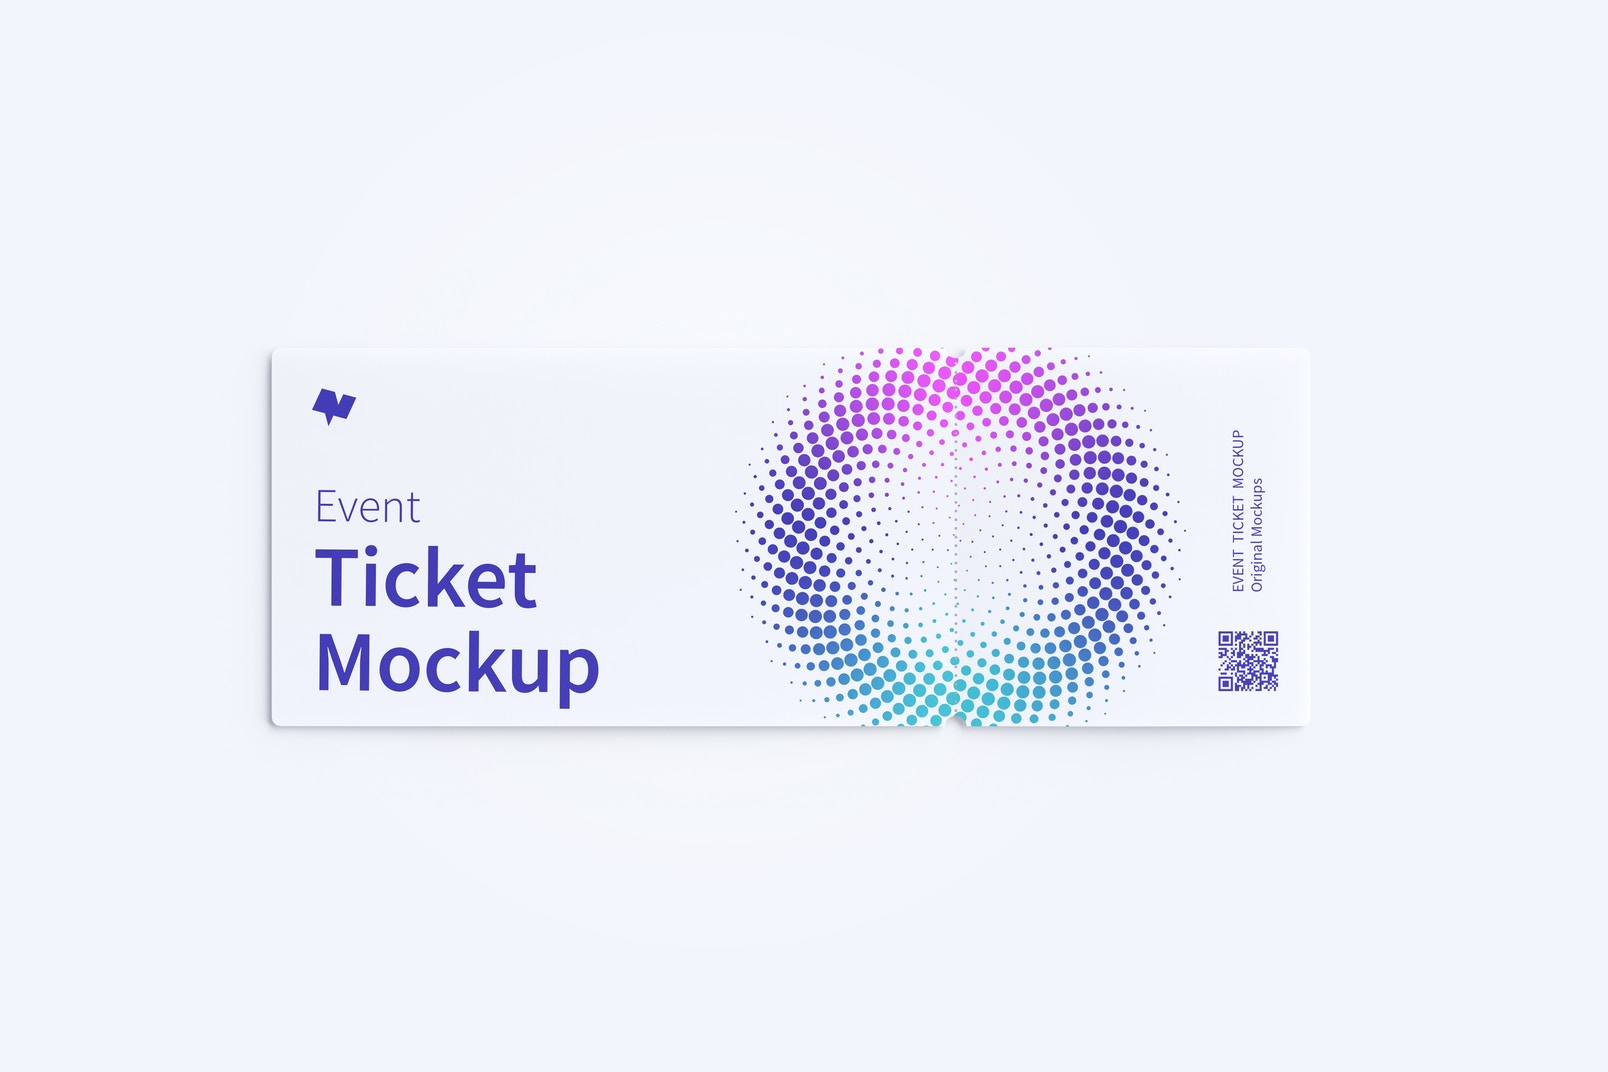 Event Ticket Mockup, Top View